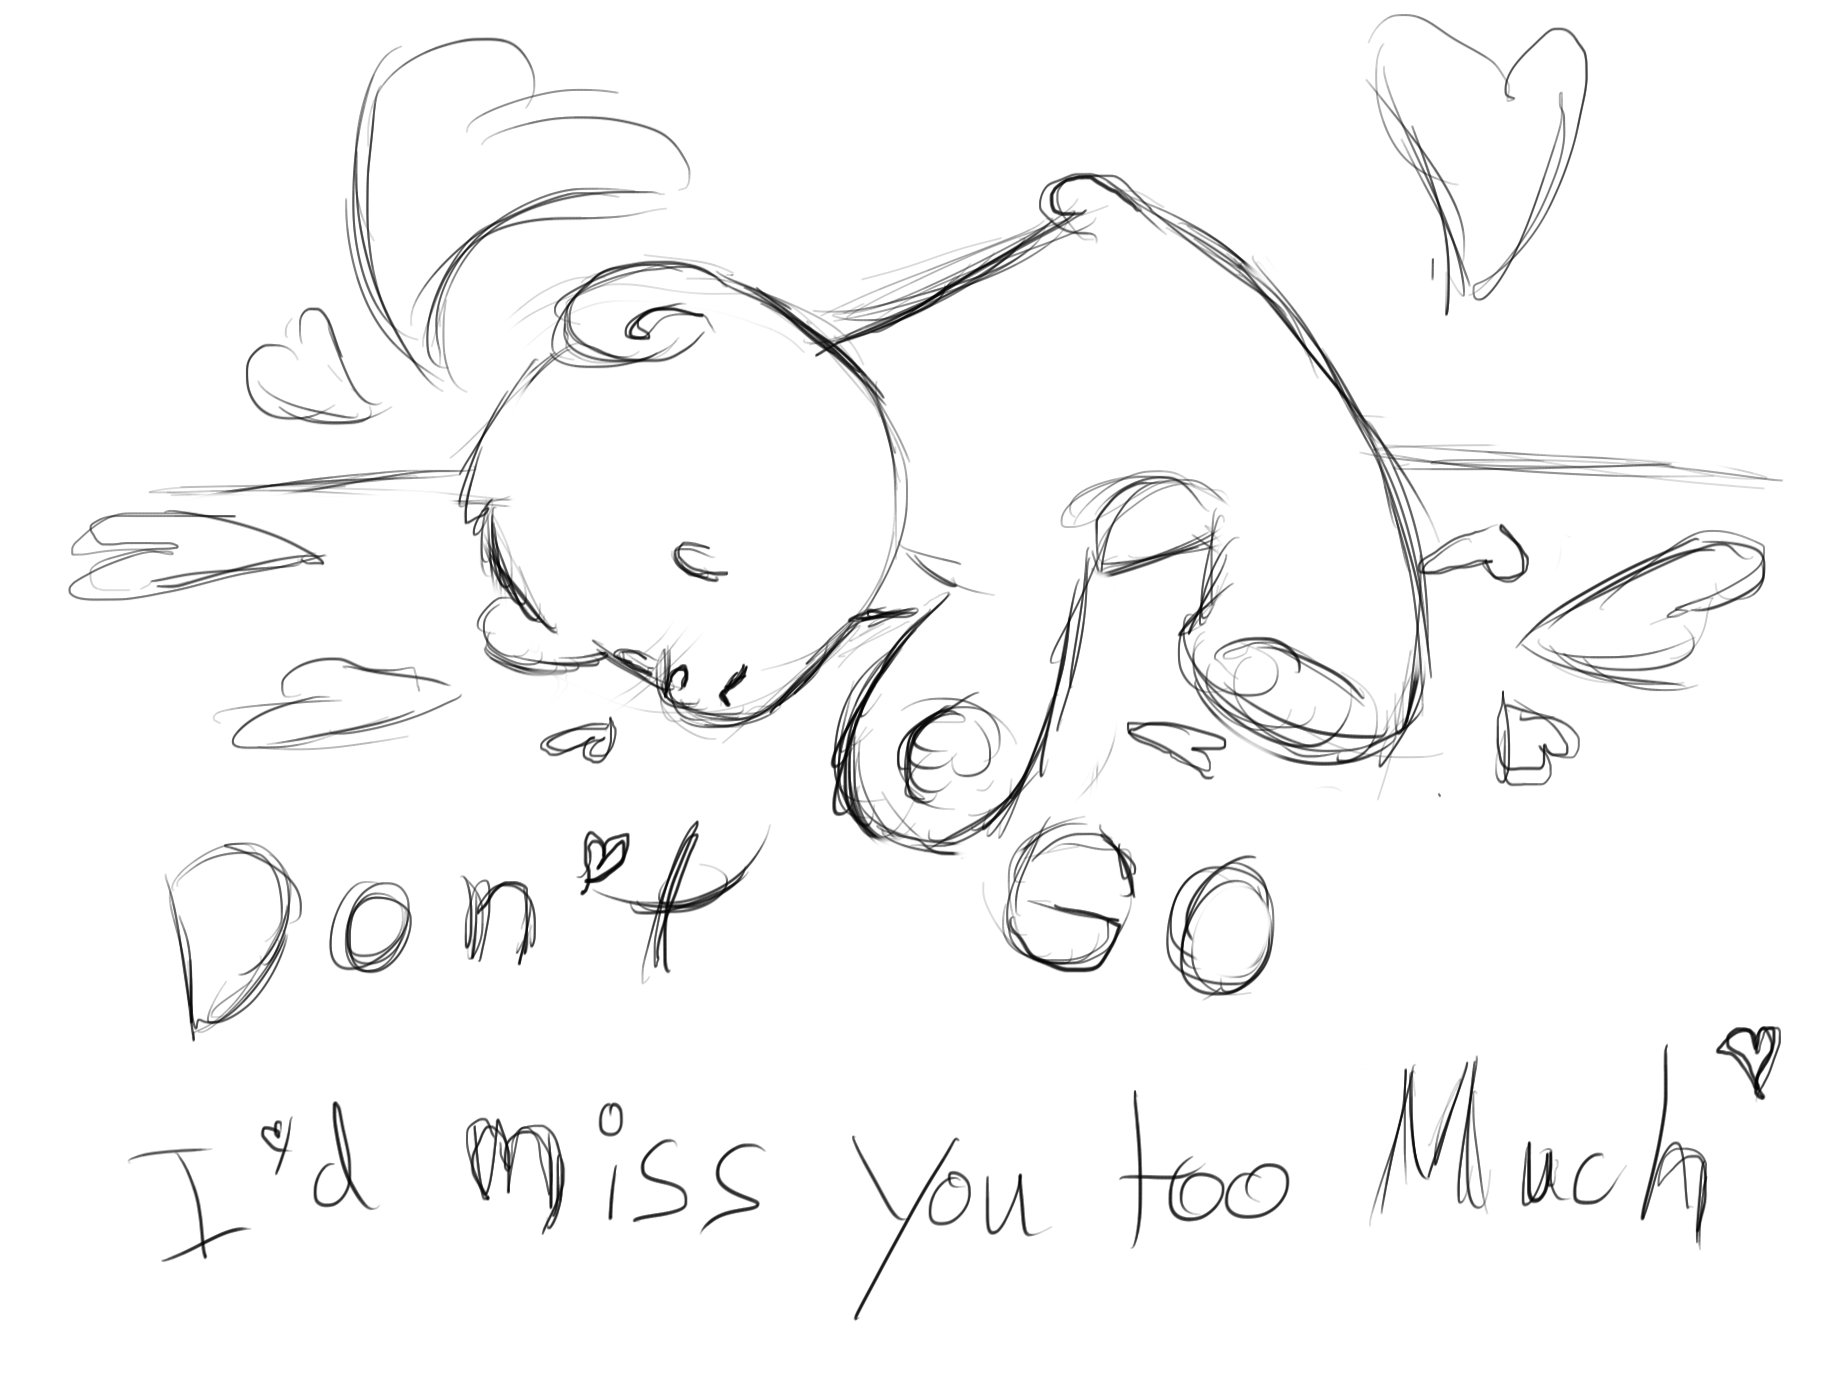 miss you drawing at getdrawings com free for personal use miss you